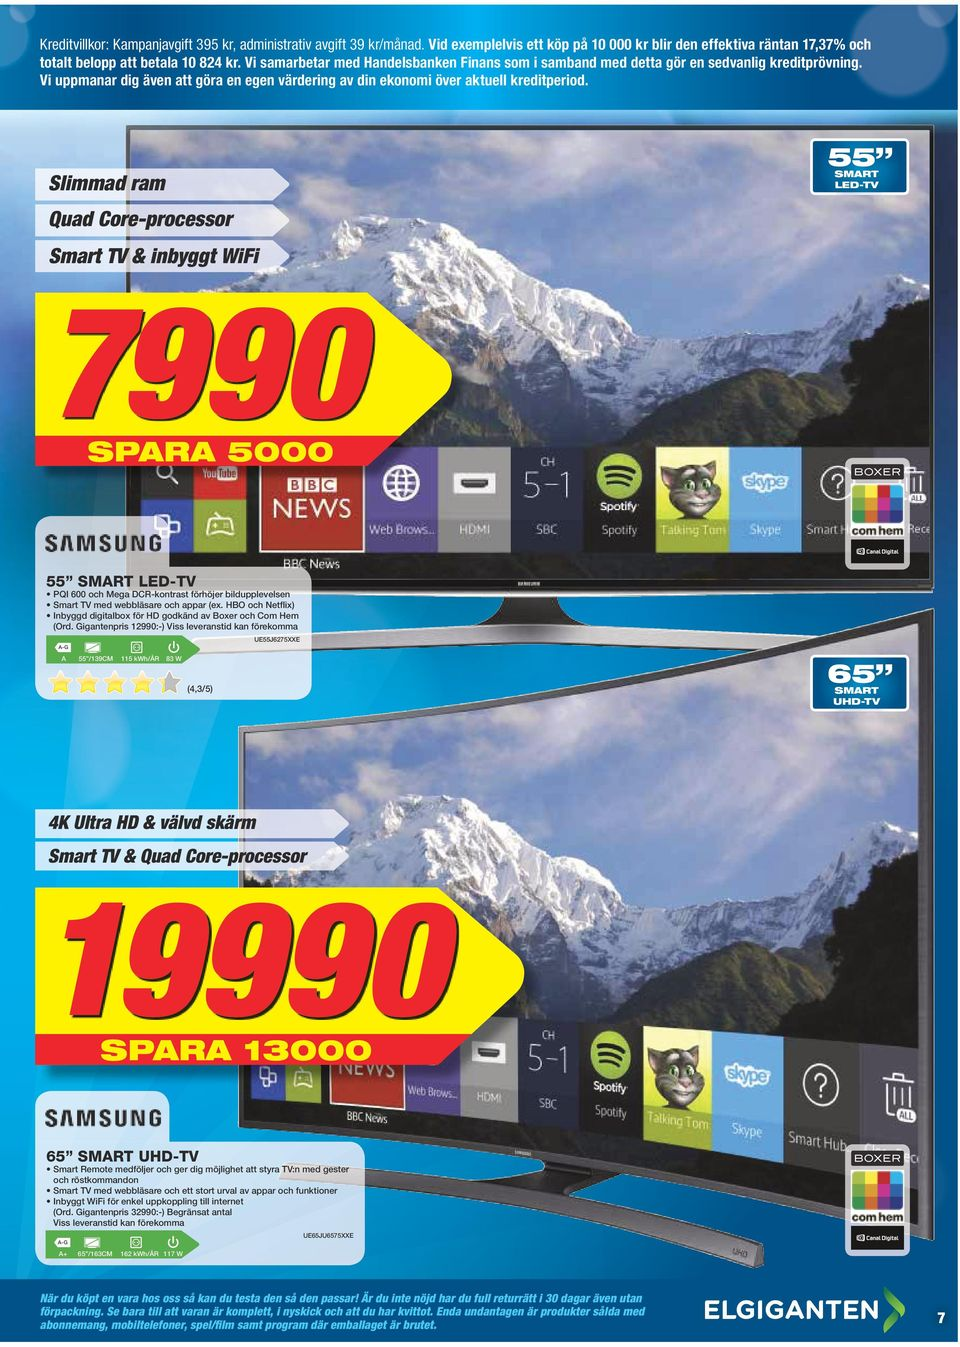 Slimmad ram Quad Core-processor Smart TV & inbyggt WiFi 7990 SPR 5000 55 SMRT LED-TV 55 SMRT LED-TV PQI 600 och Mega DCR-kontrast förhöjer bildupplevelsen Smart TV med webbläsare och appar (ex.